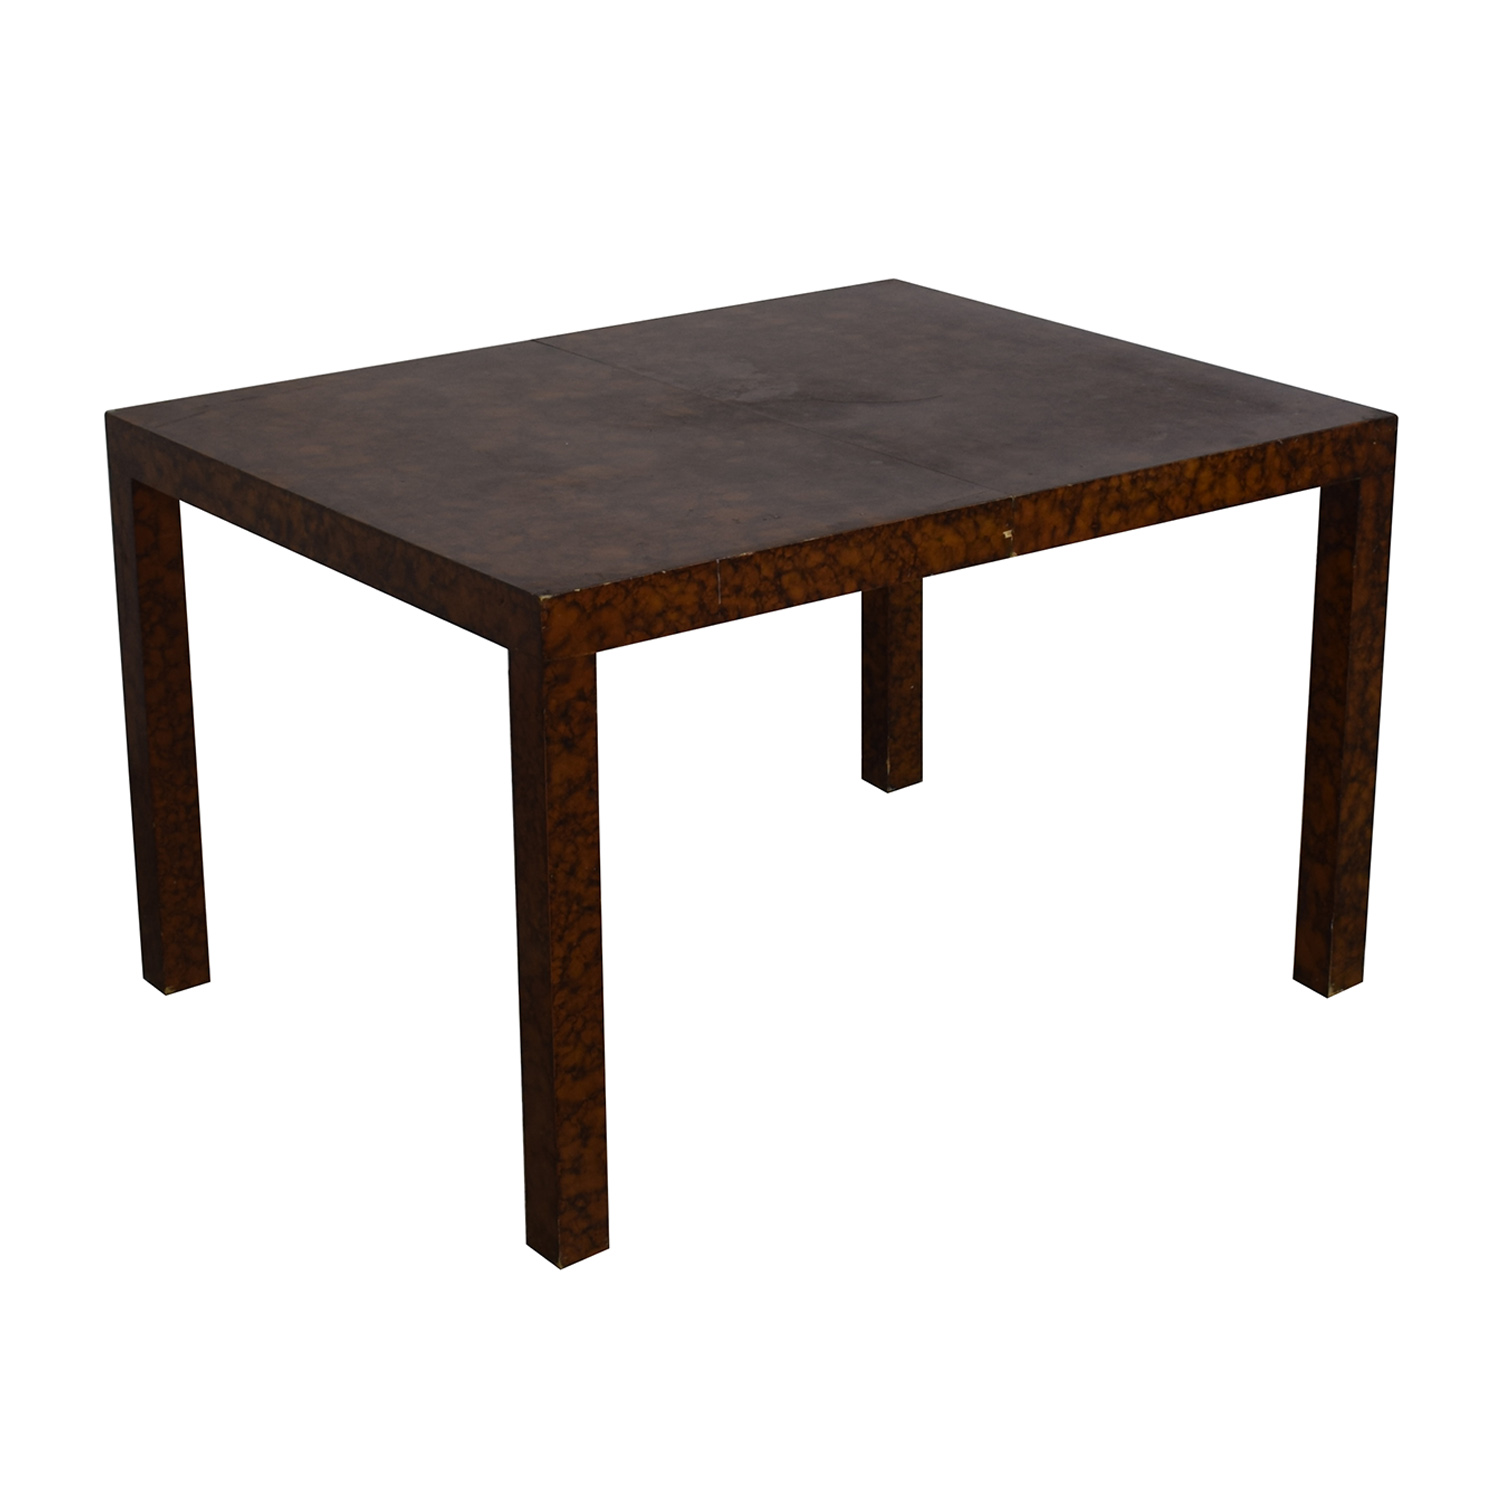 Directional Furniture Directional Furniture Milo Baughman Burl Parsons Dining Table discount